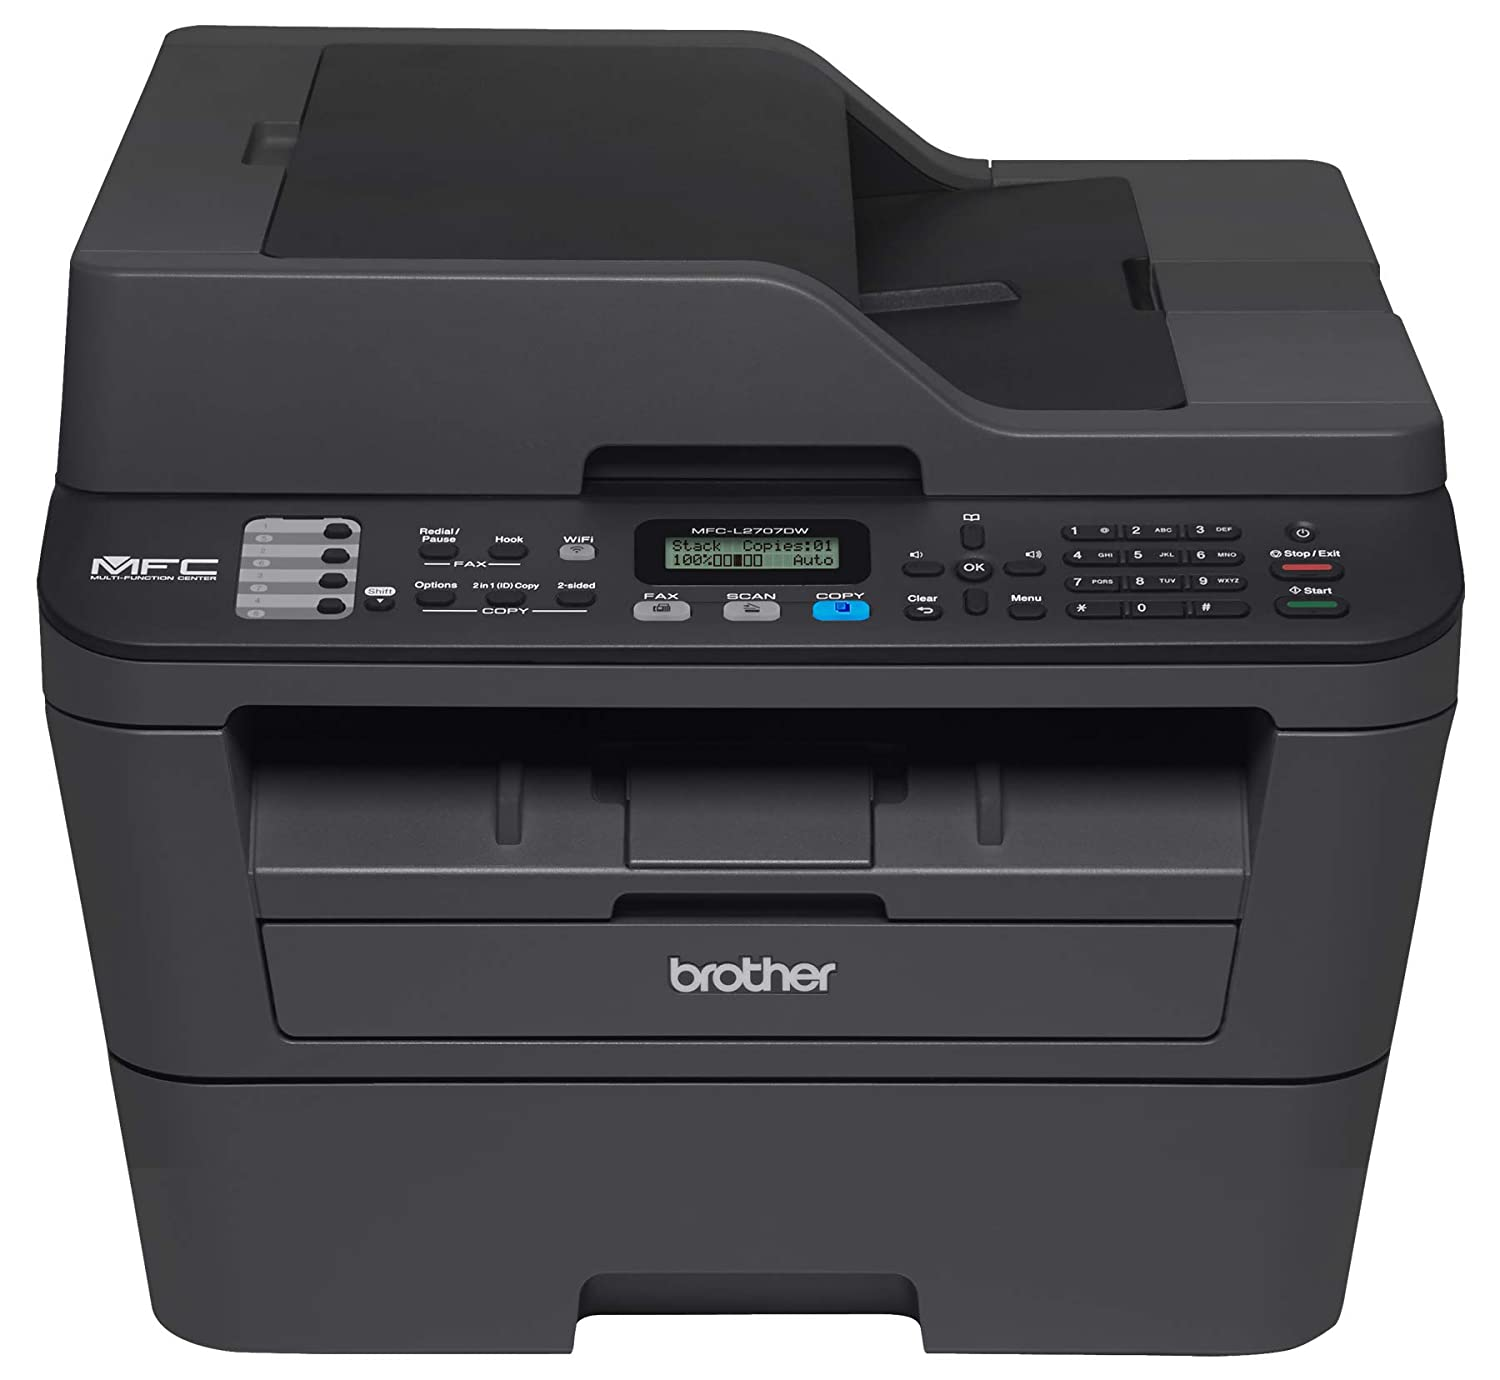 Brother International EMFCL2707DW Brother Certified Refurbished EMFC-L2707DW- Black -Monochrome Laser All-in-One with Wireless Networking MFC-L2707DW